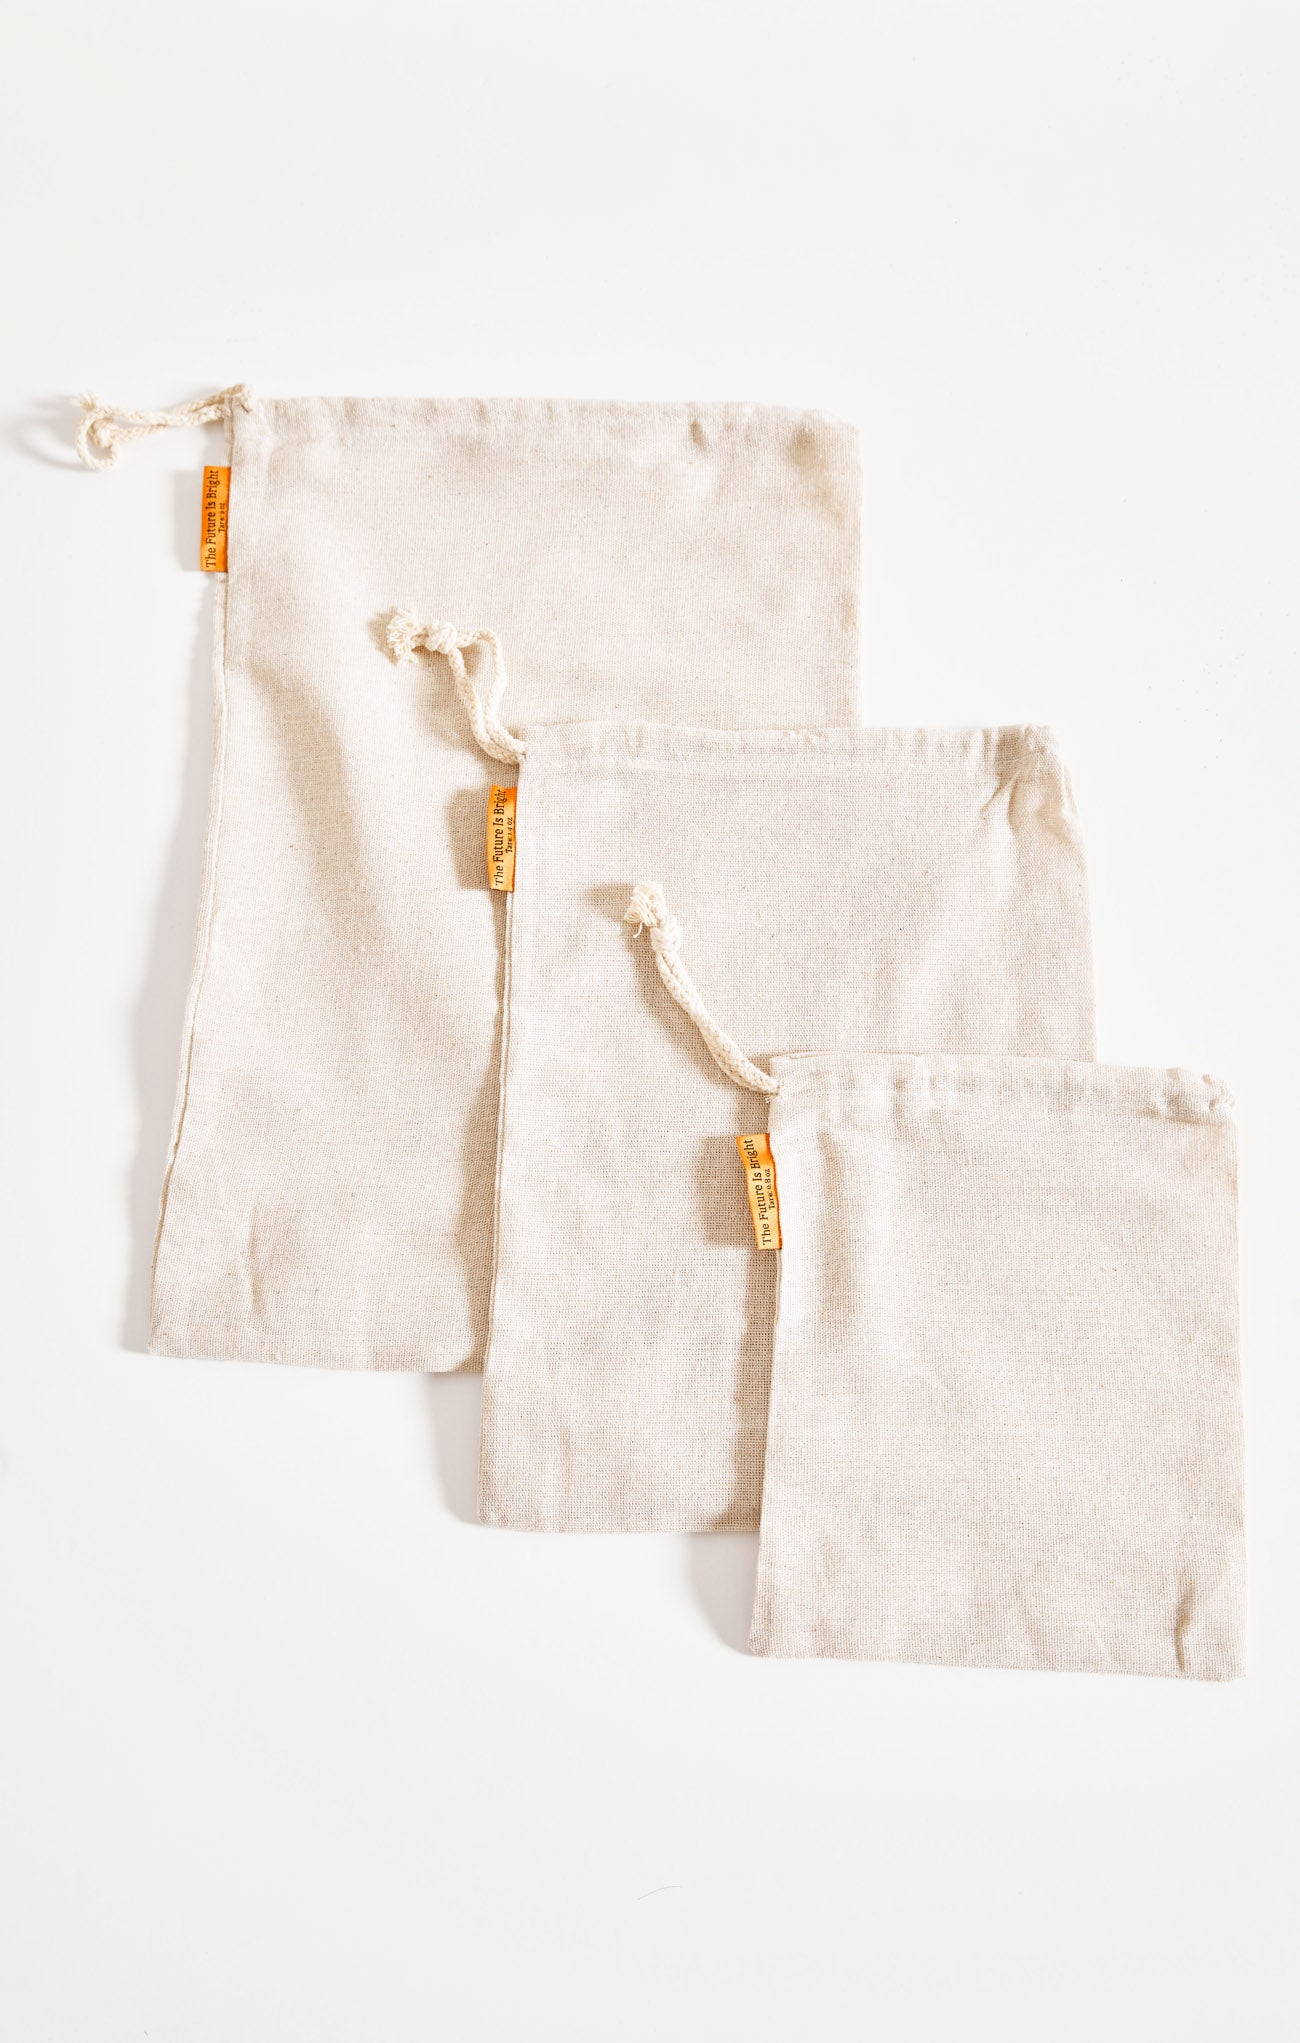 Sustainable Gifts Reusable Produce Bags (7-Pack) By The Sunshine Series Natural